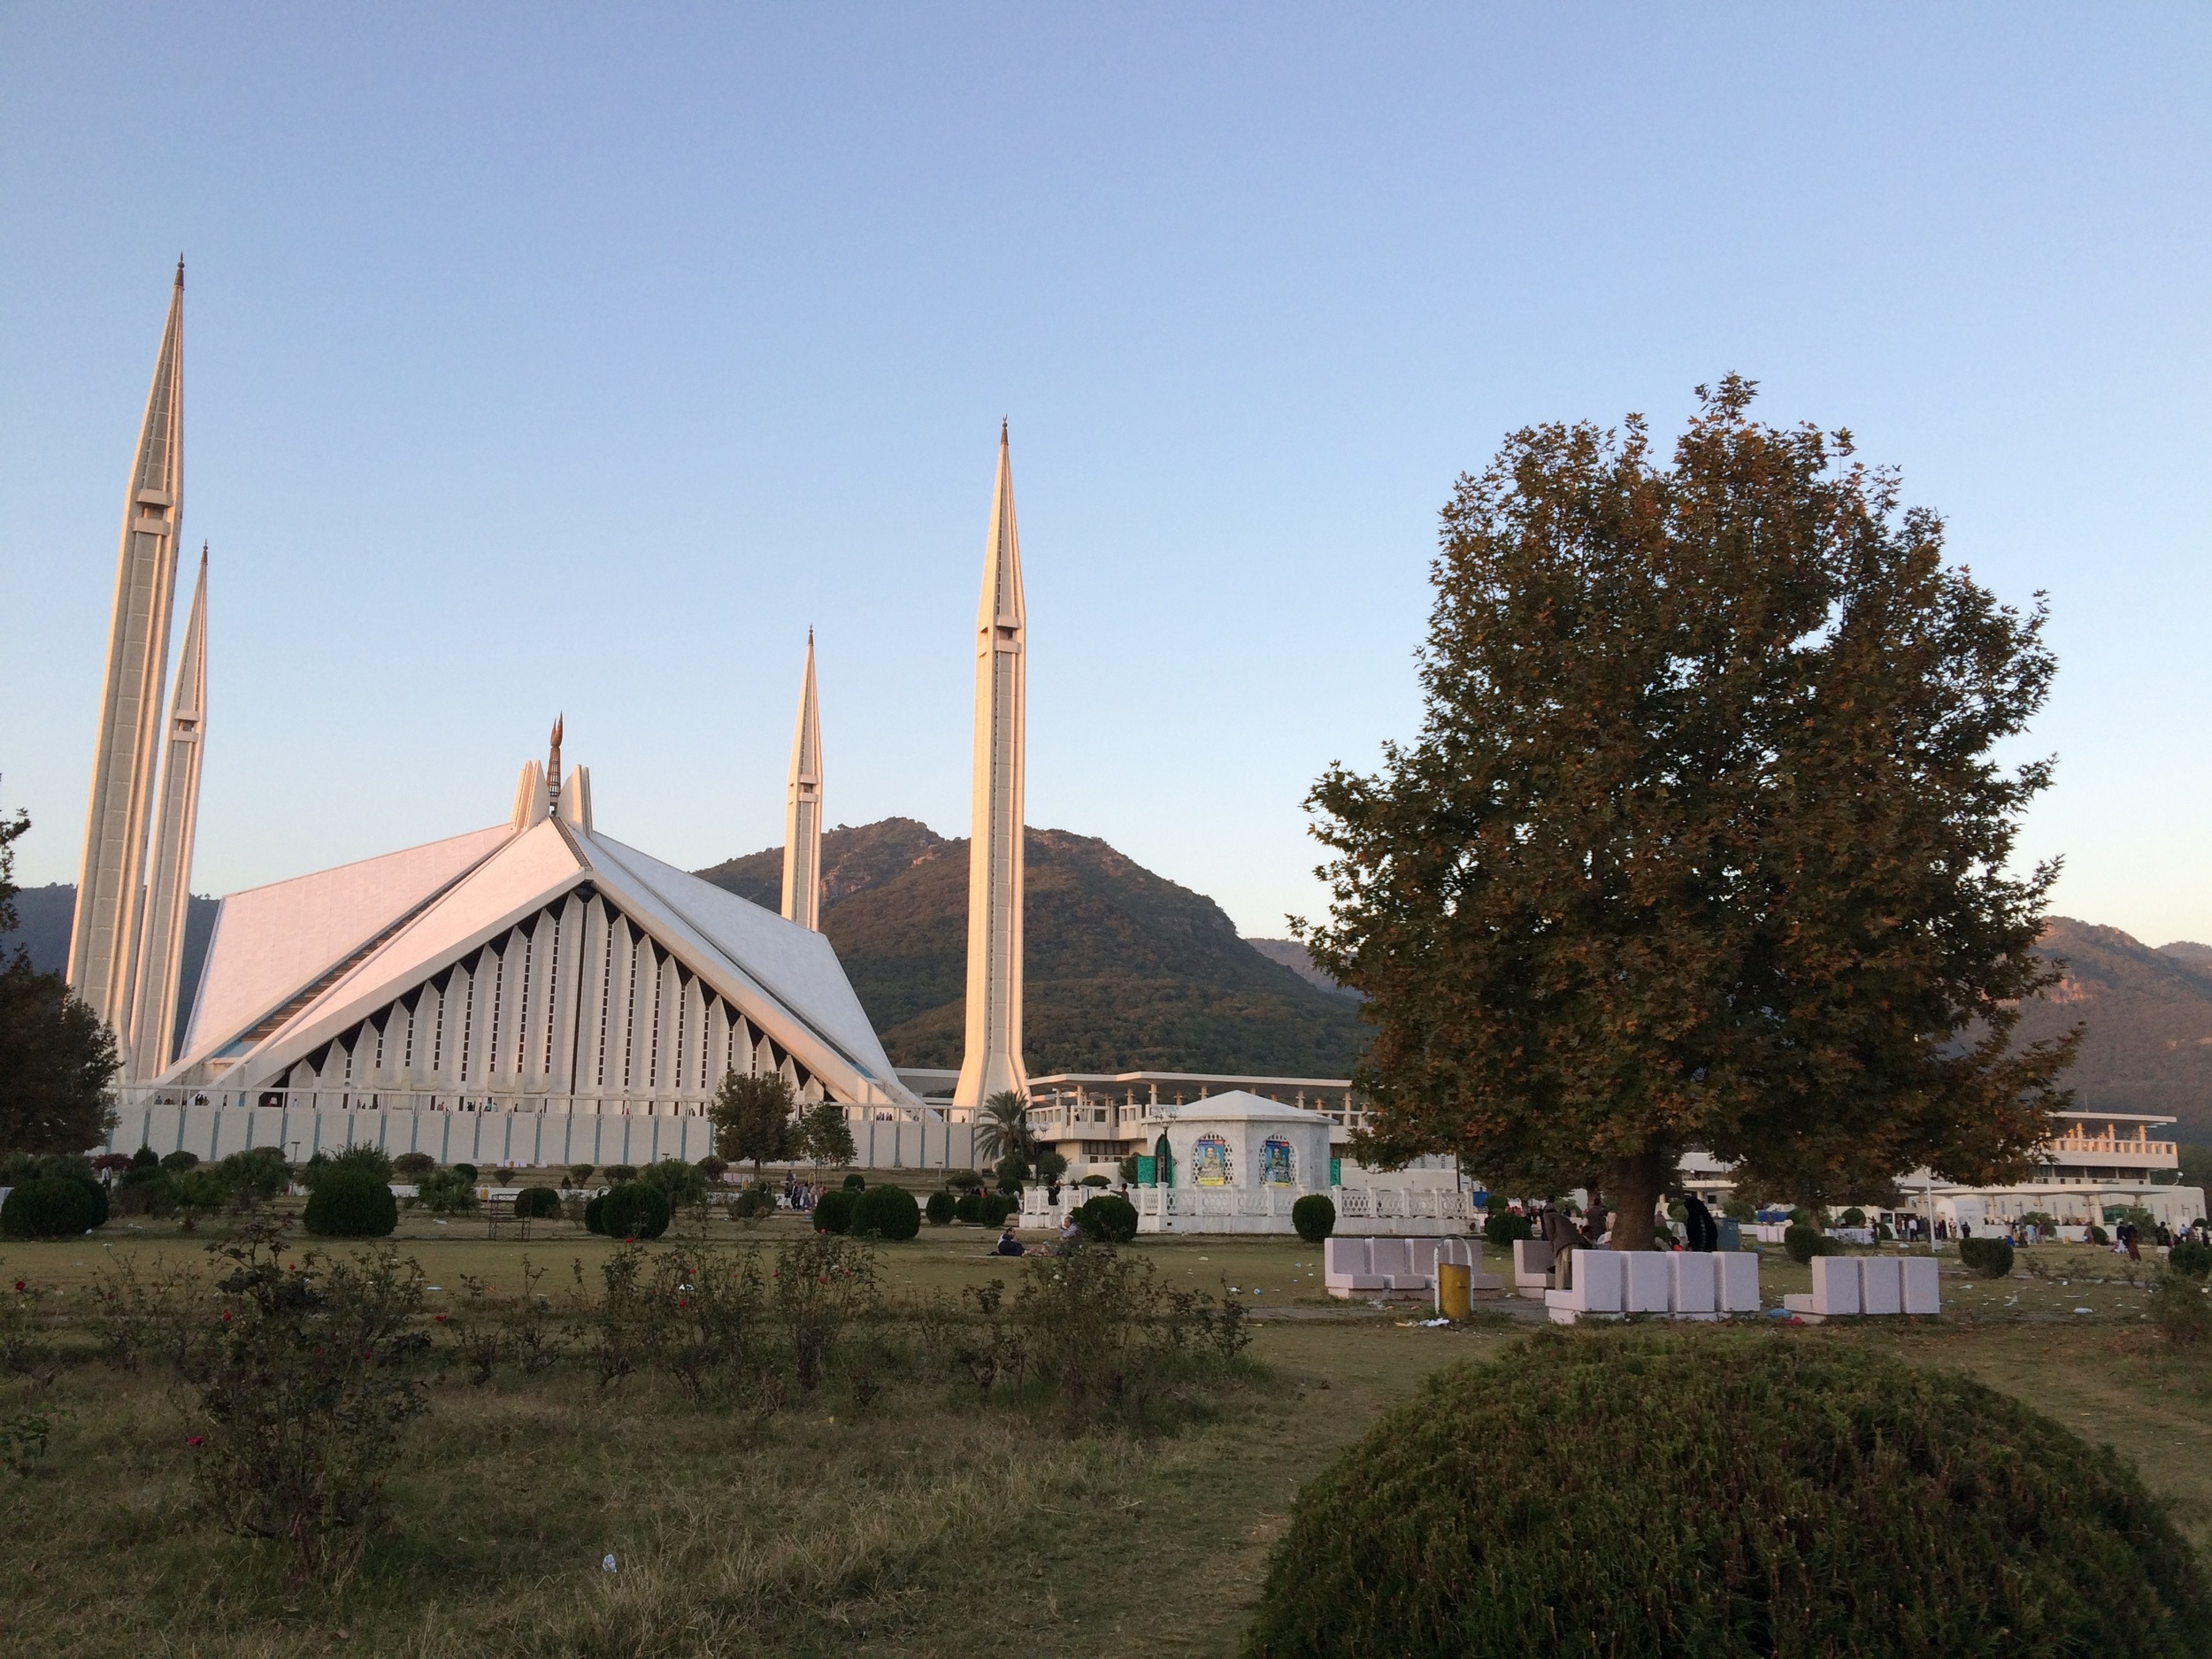 The famous Faisal Mosque in Islamabad. This is the largest mosque in the country.